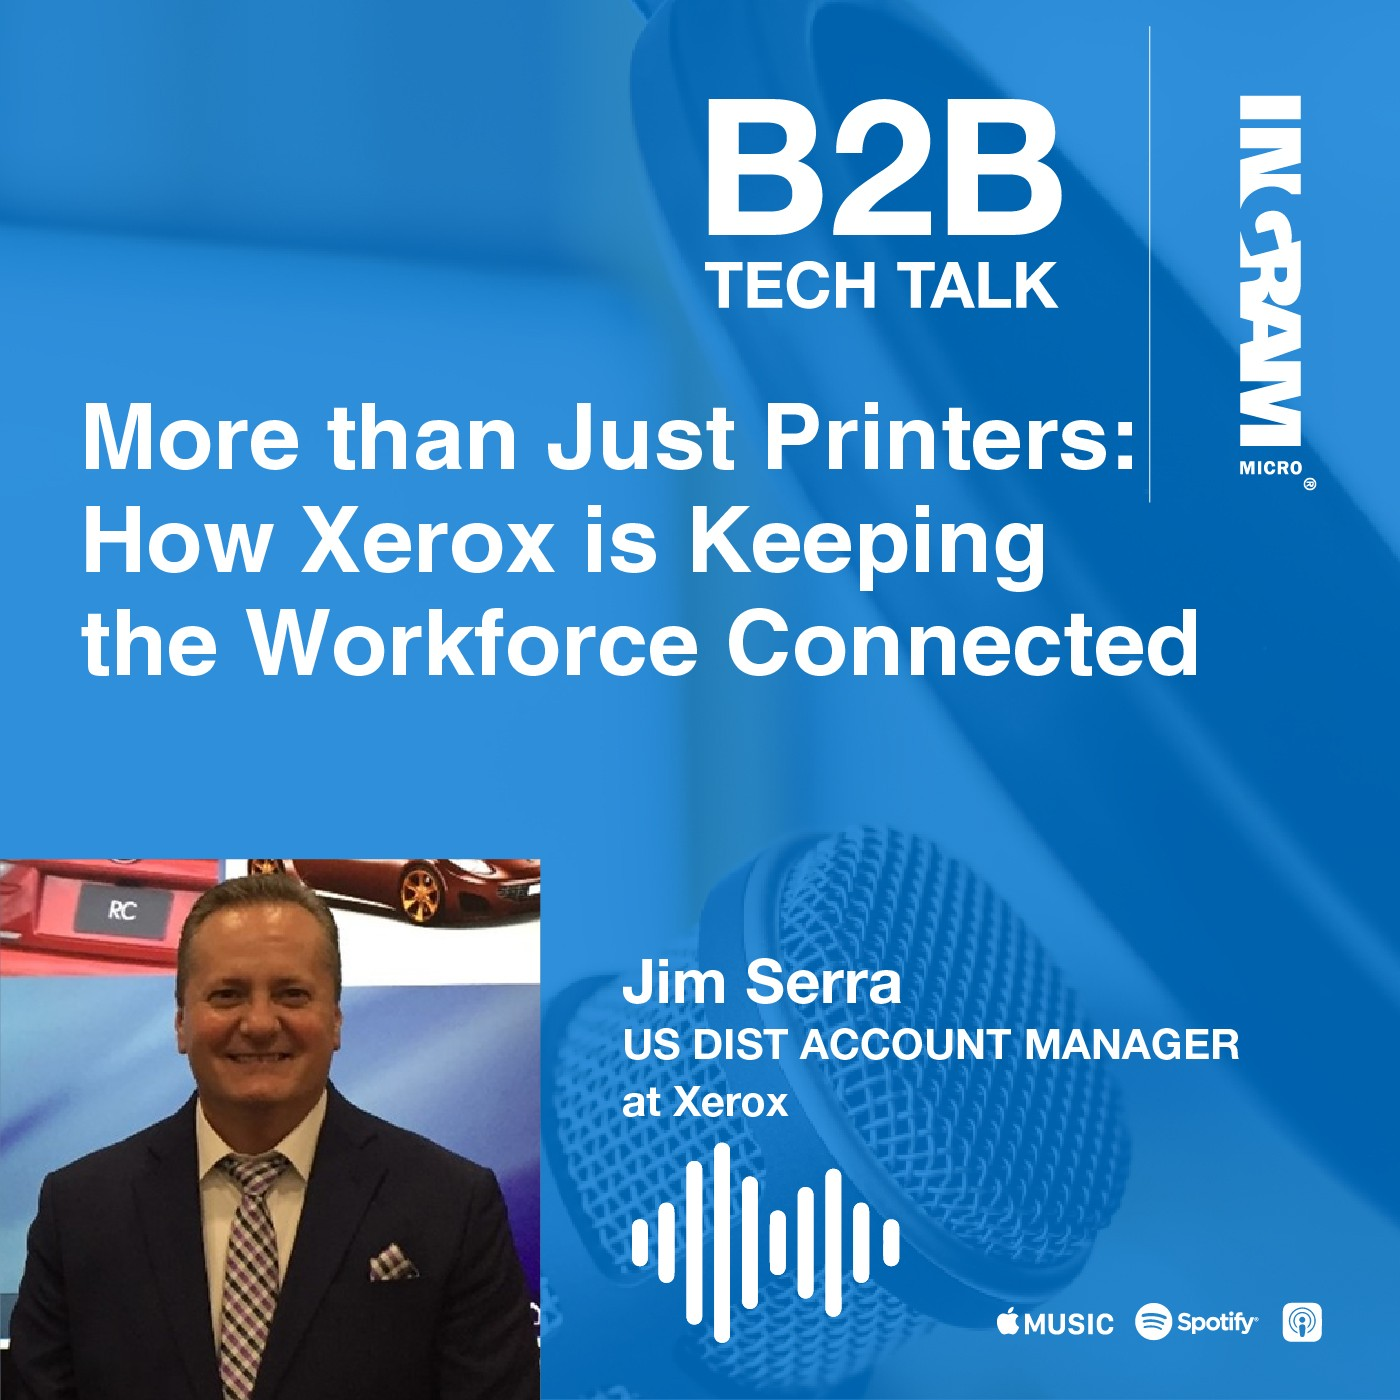 More than Just Printers: How Xerox is Keeping the Workforce Connected